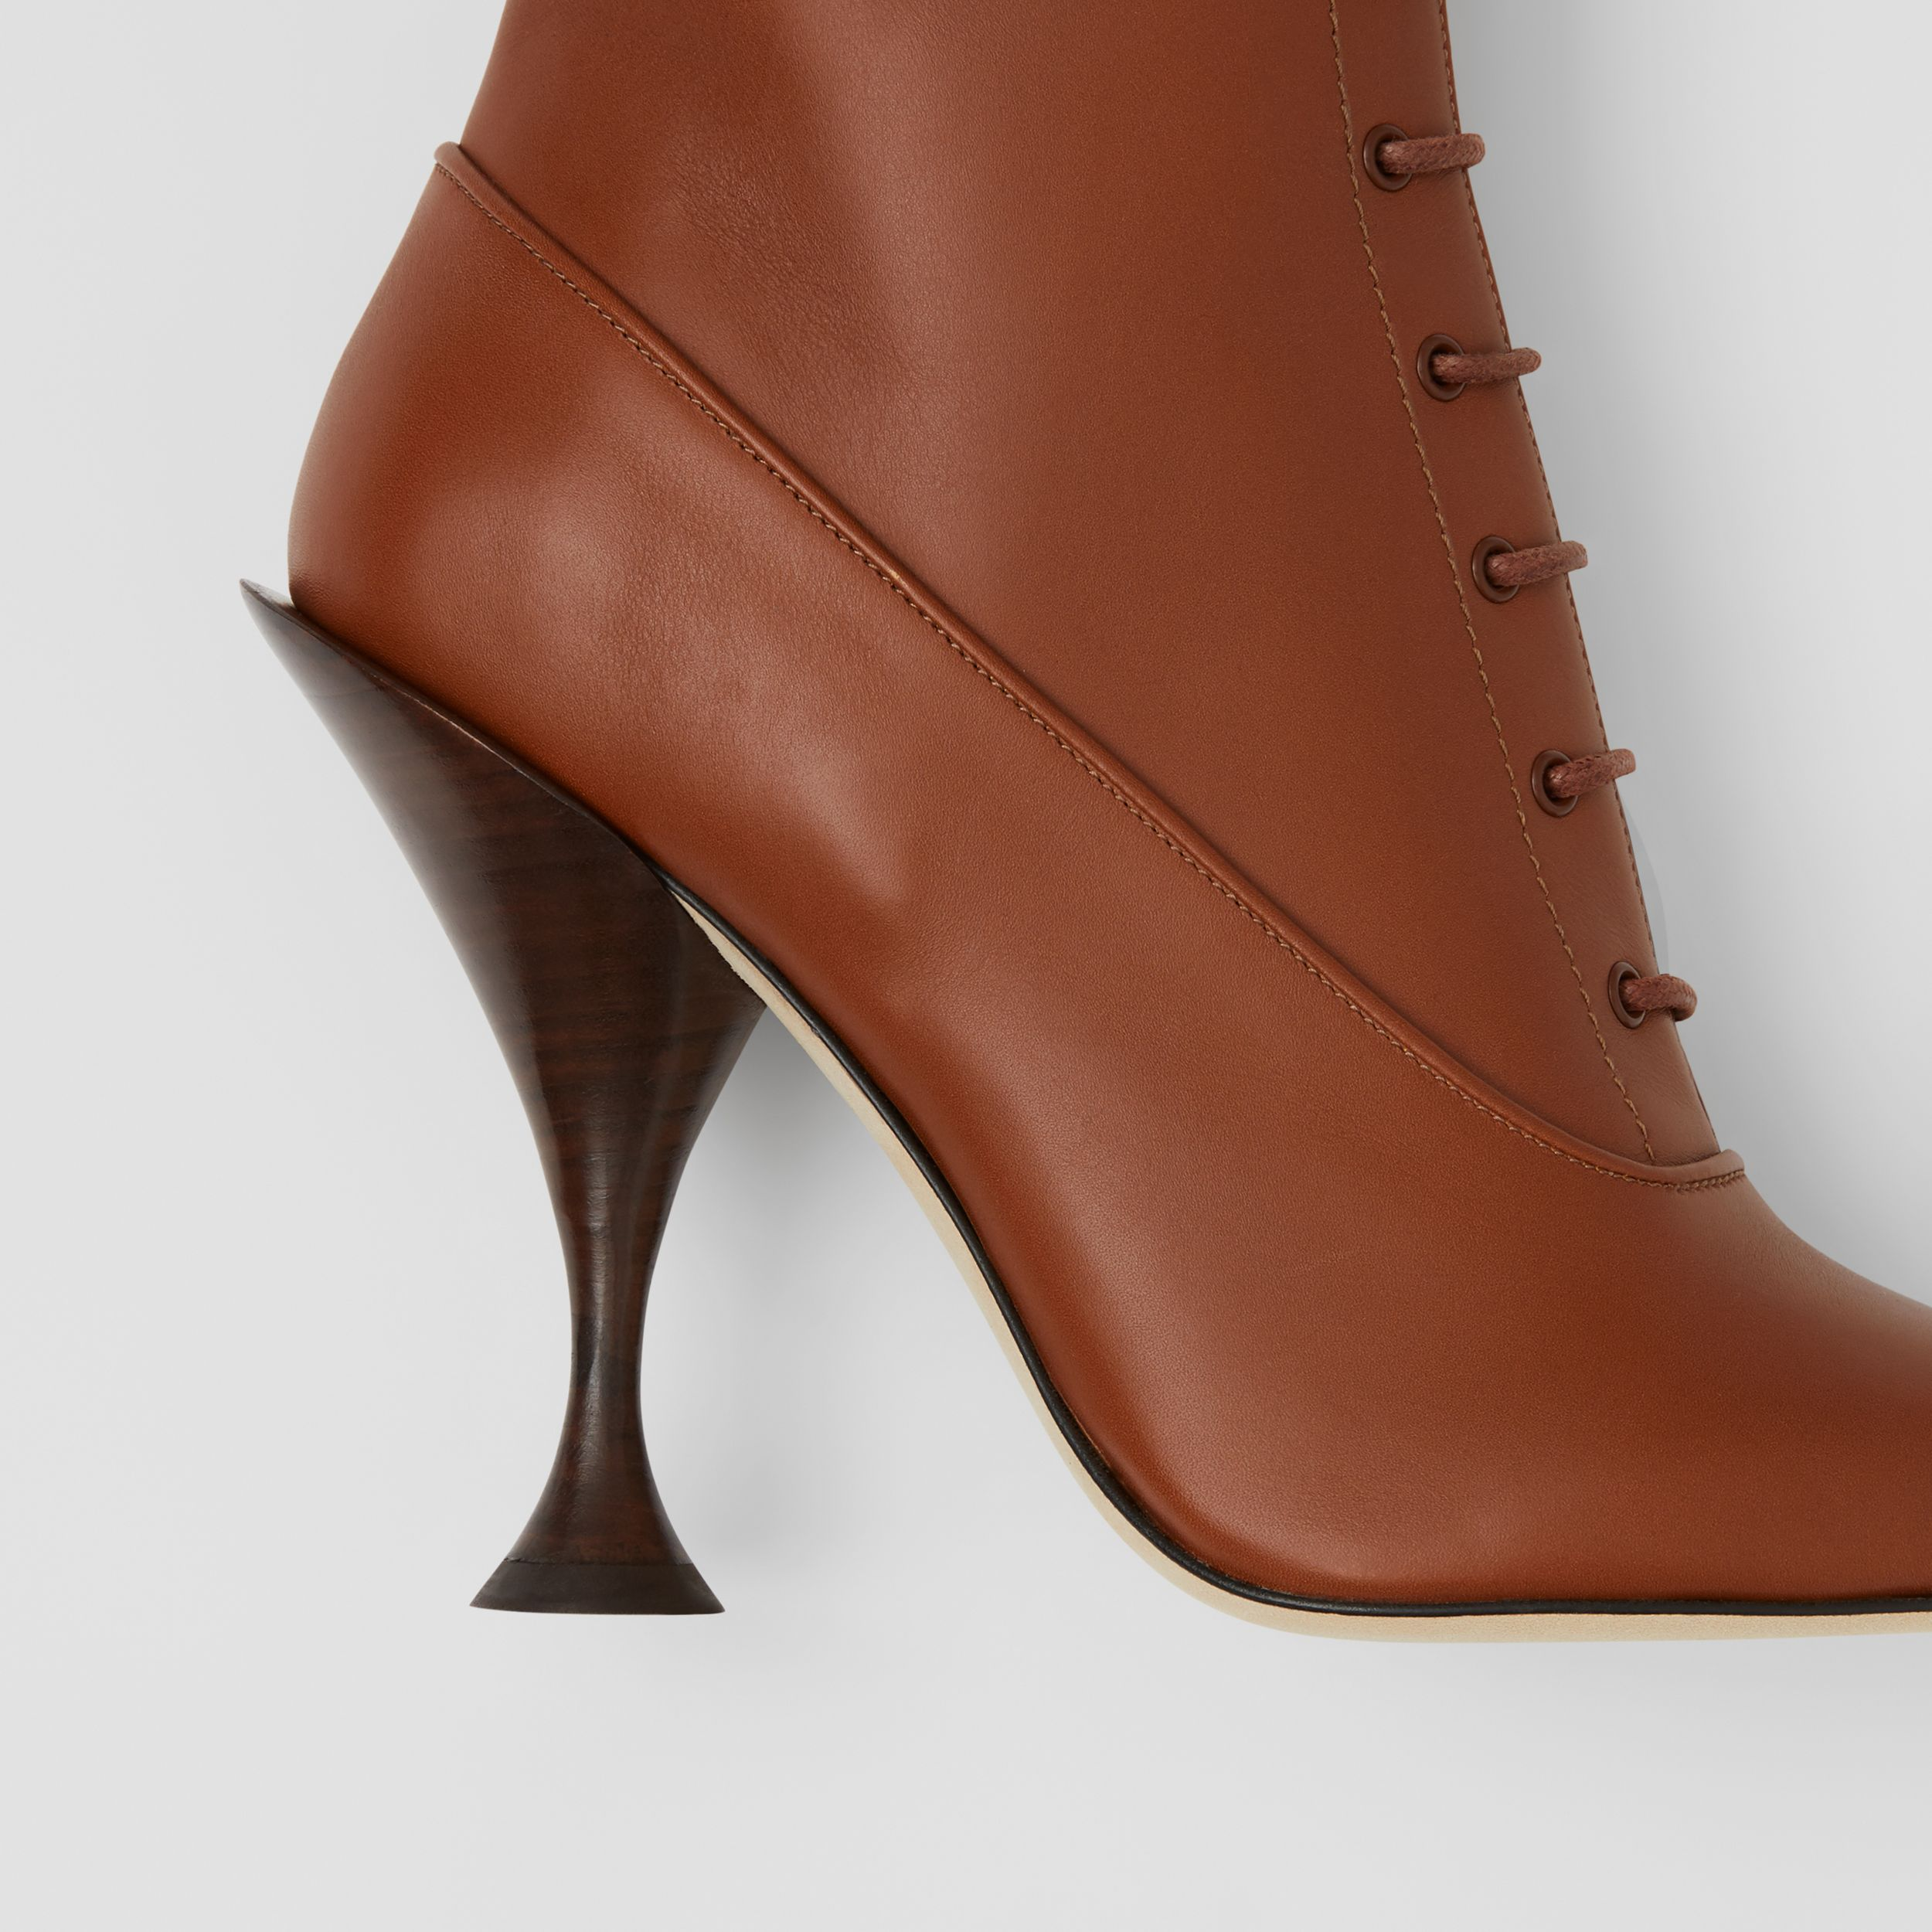 Lambskin Lace-up Ankle Boots in Tan - Women | Burberry - 2